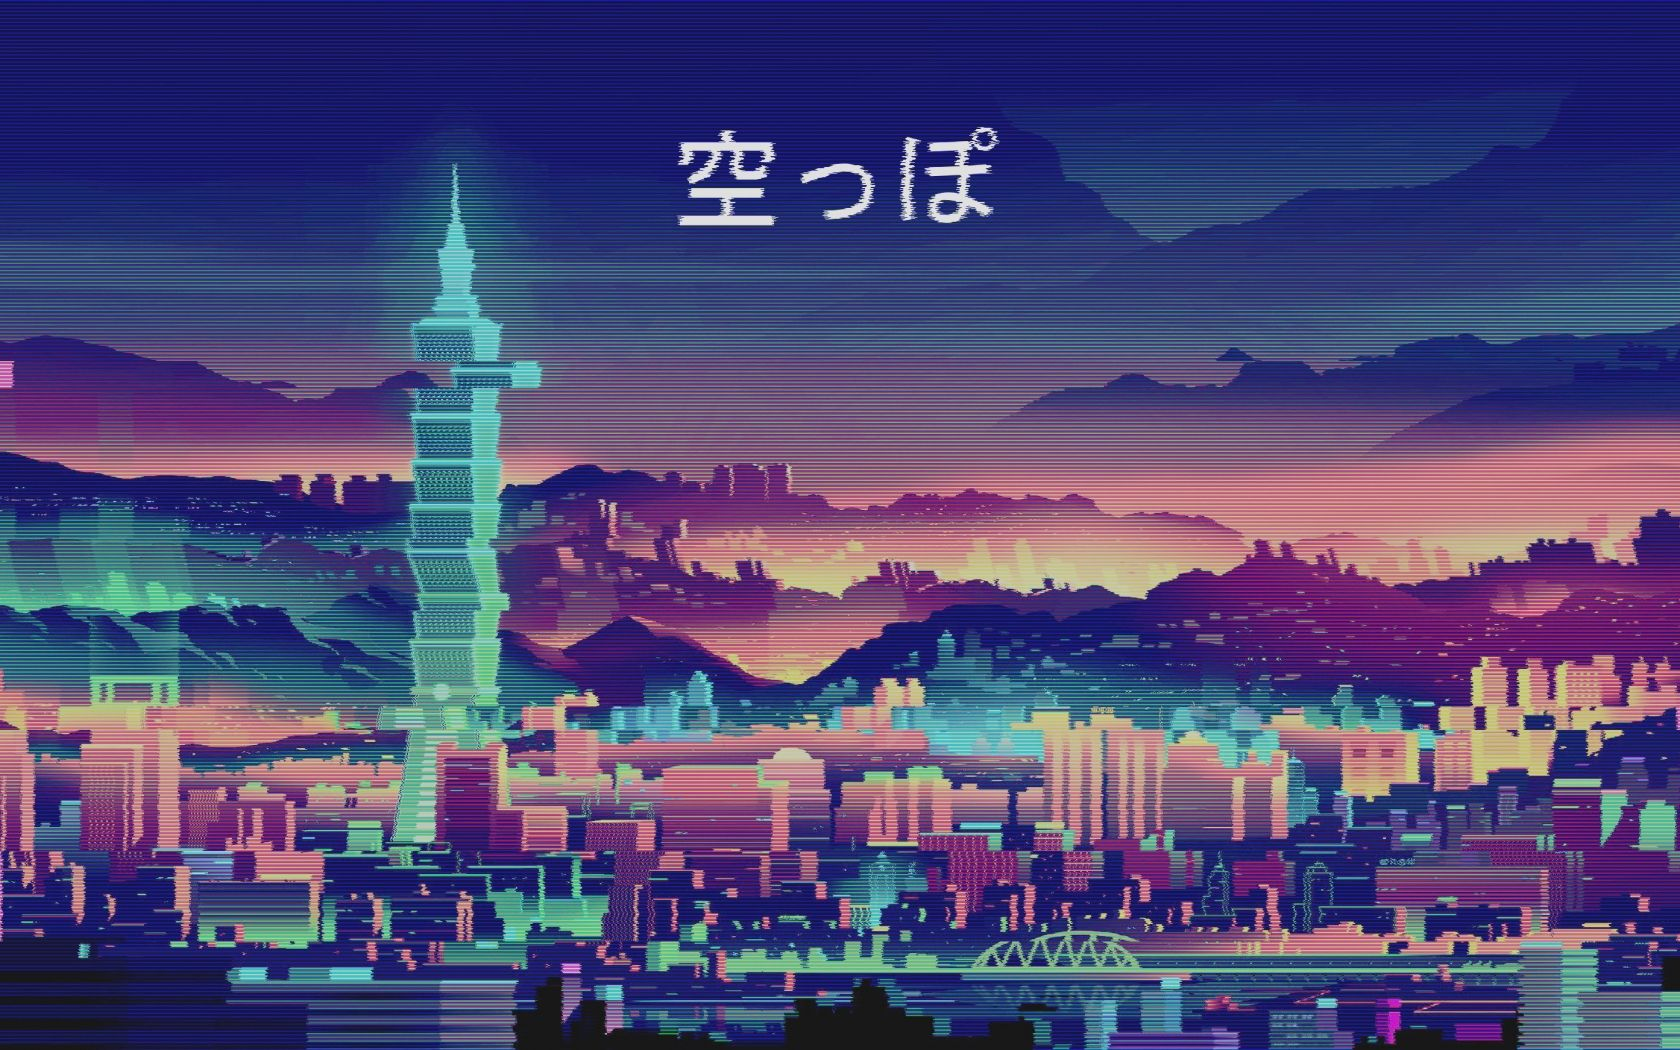 Aesthetic Anime Wallpapers On Wallpaperdog Enjoy and share your favorite beautiful hd wallpapers and background images. aesthetic anime wallpapers on wallpaperdog